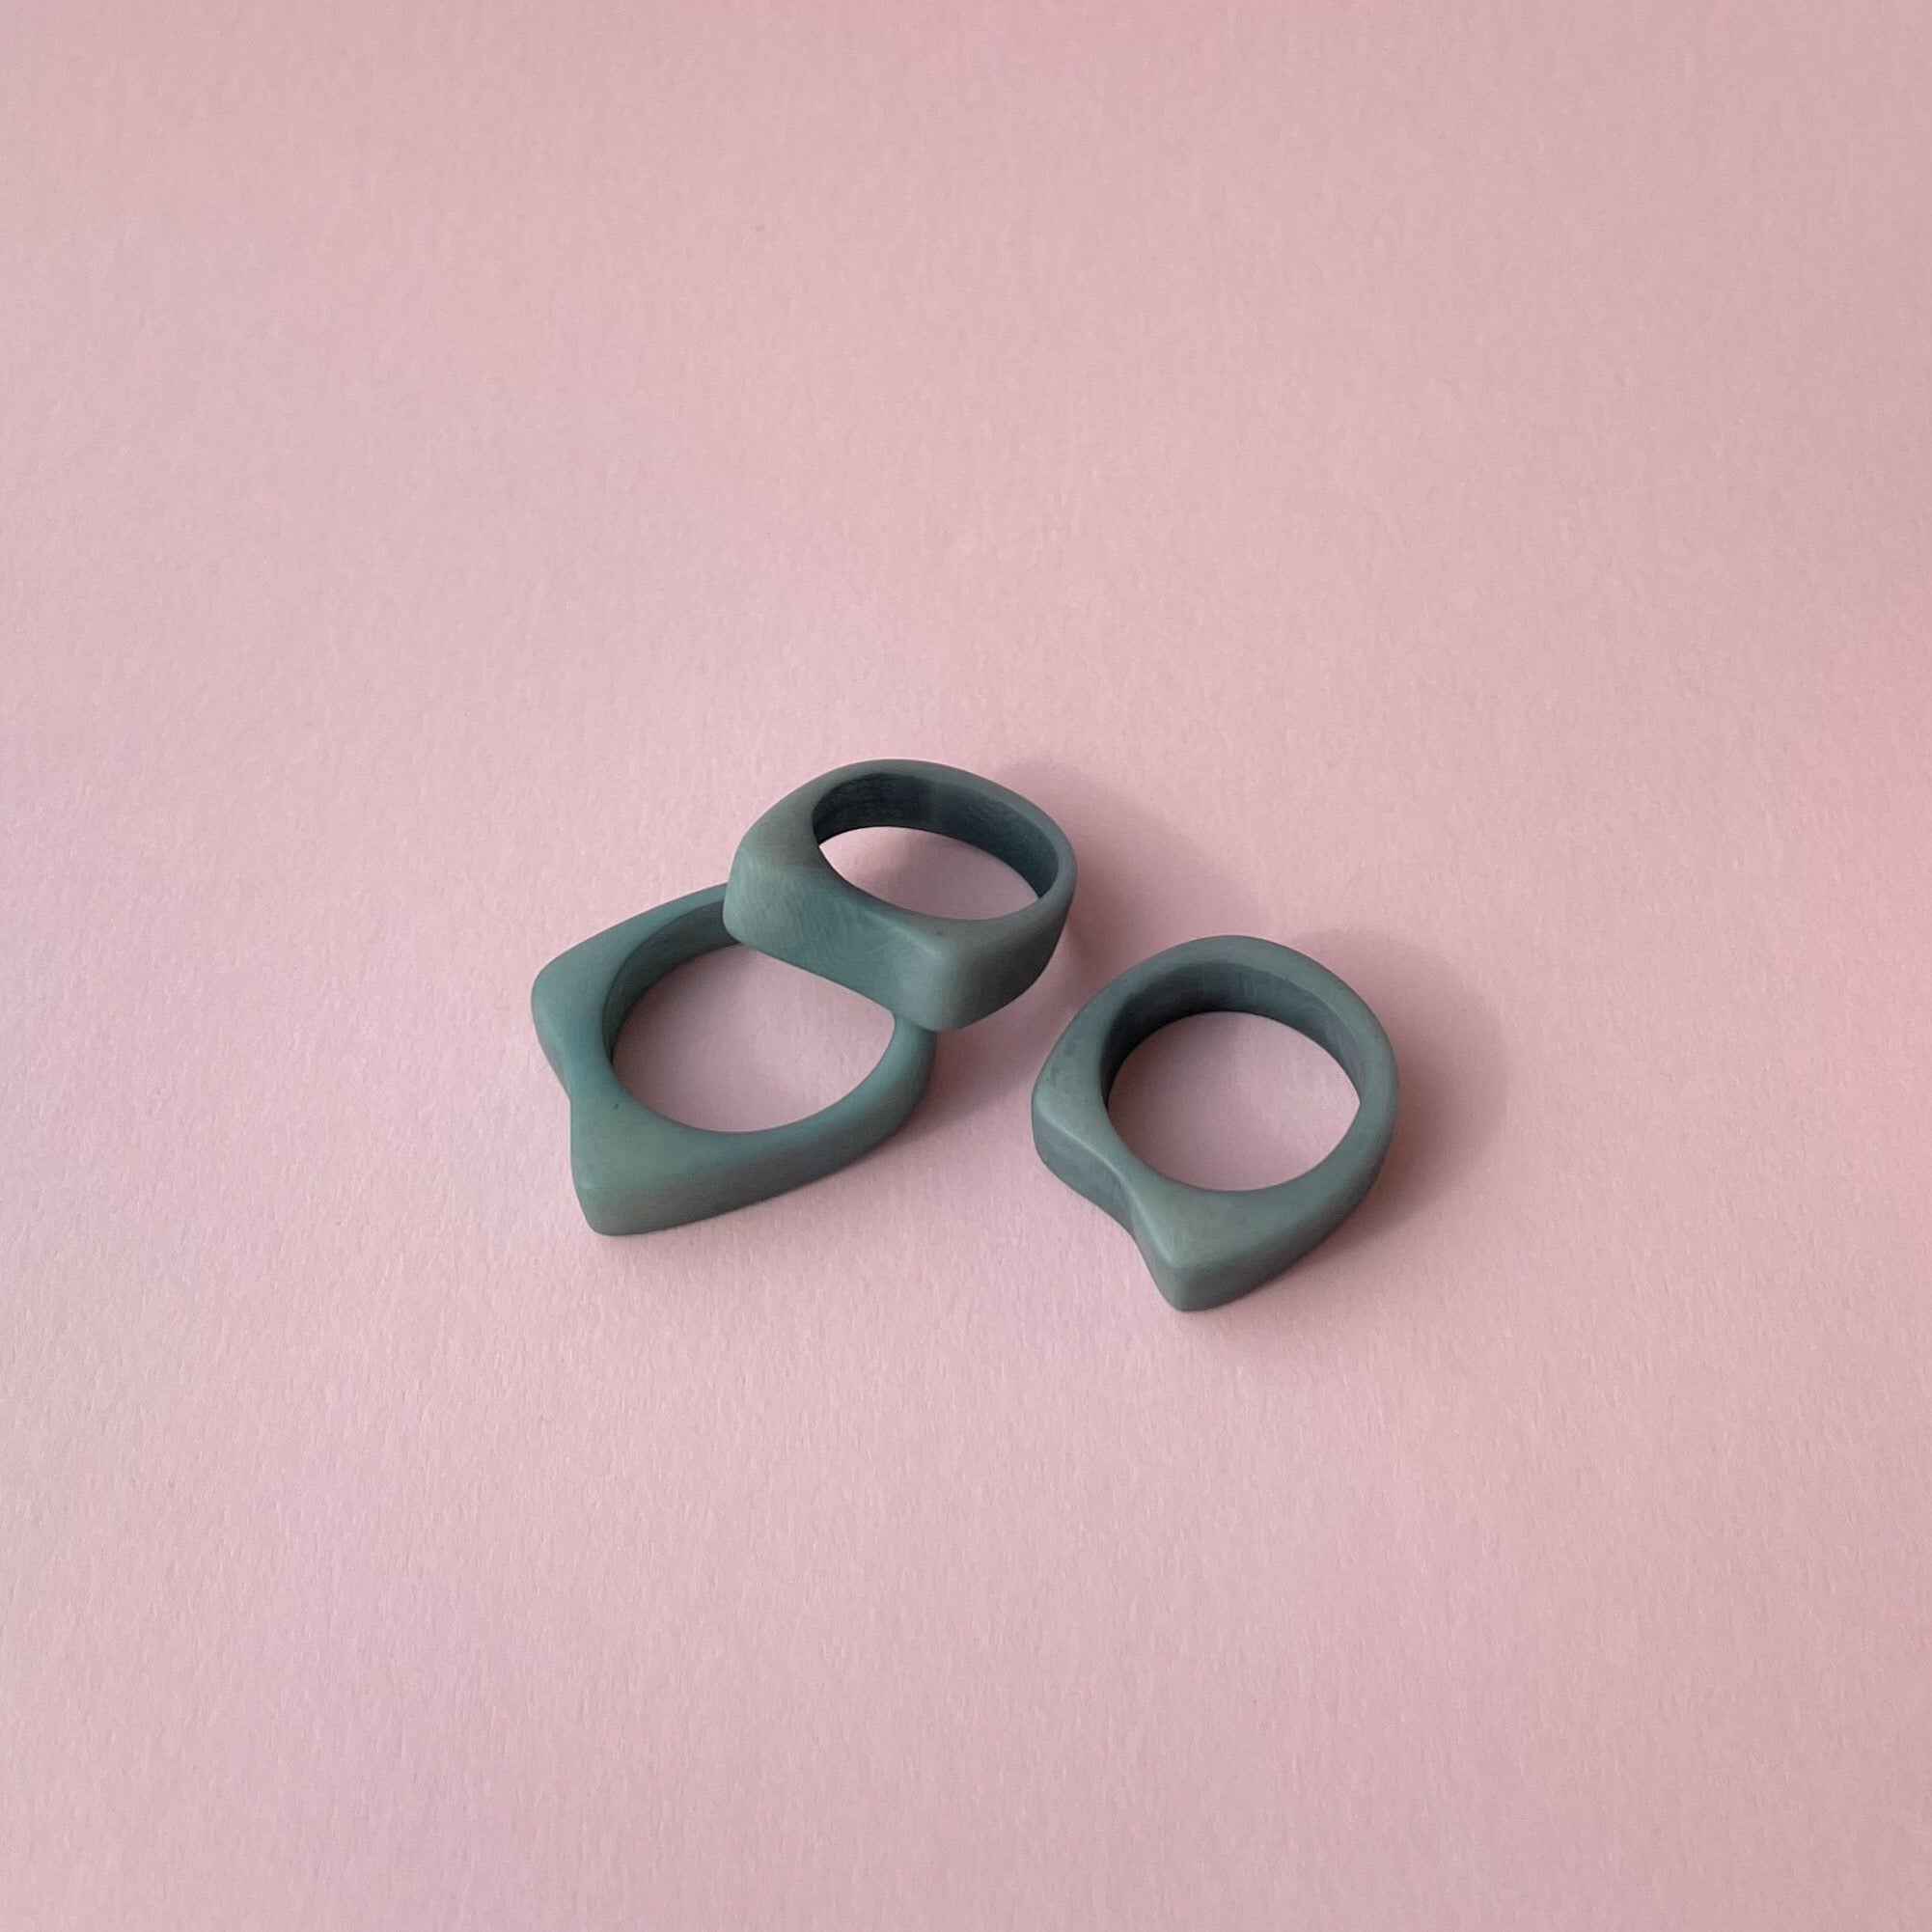 Handmade rings made of tagua nut grey blue